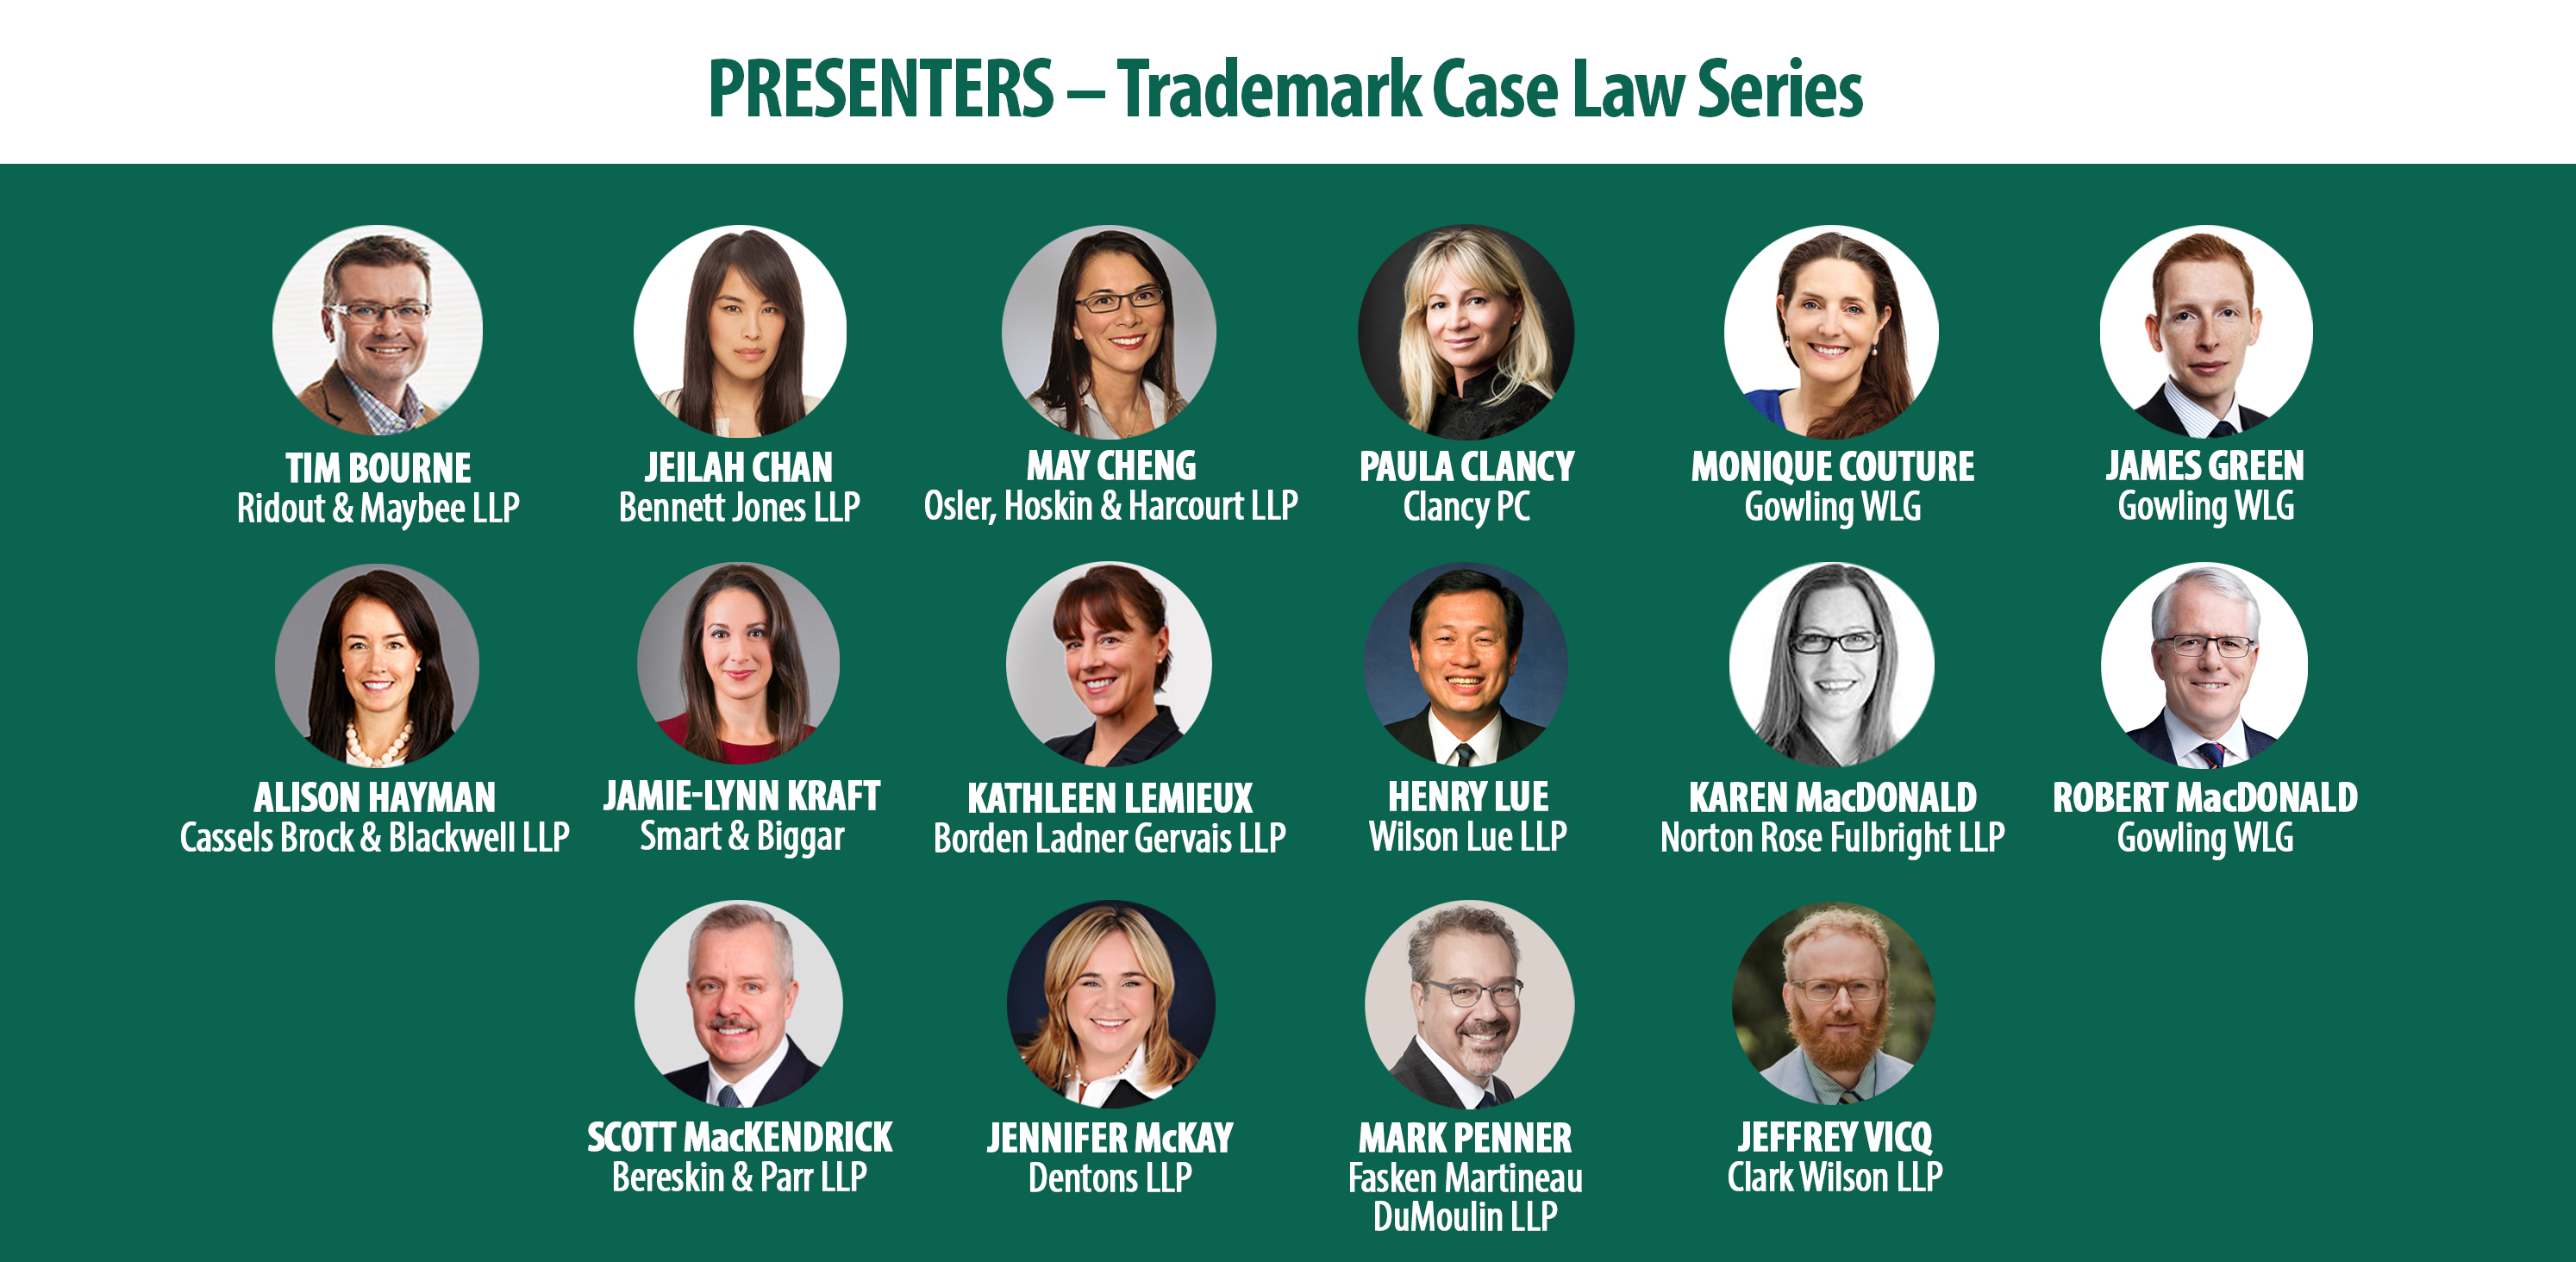 Trademark Case Law Speakers - EN